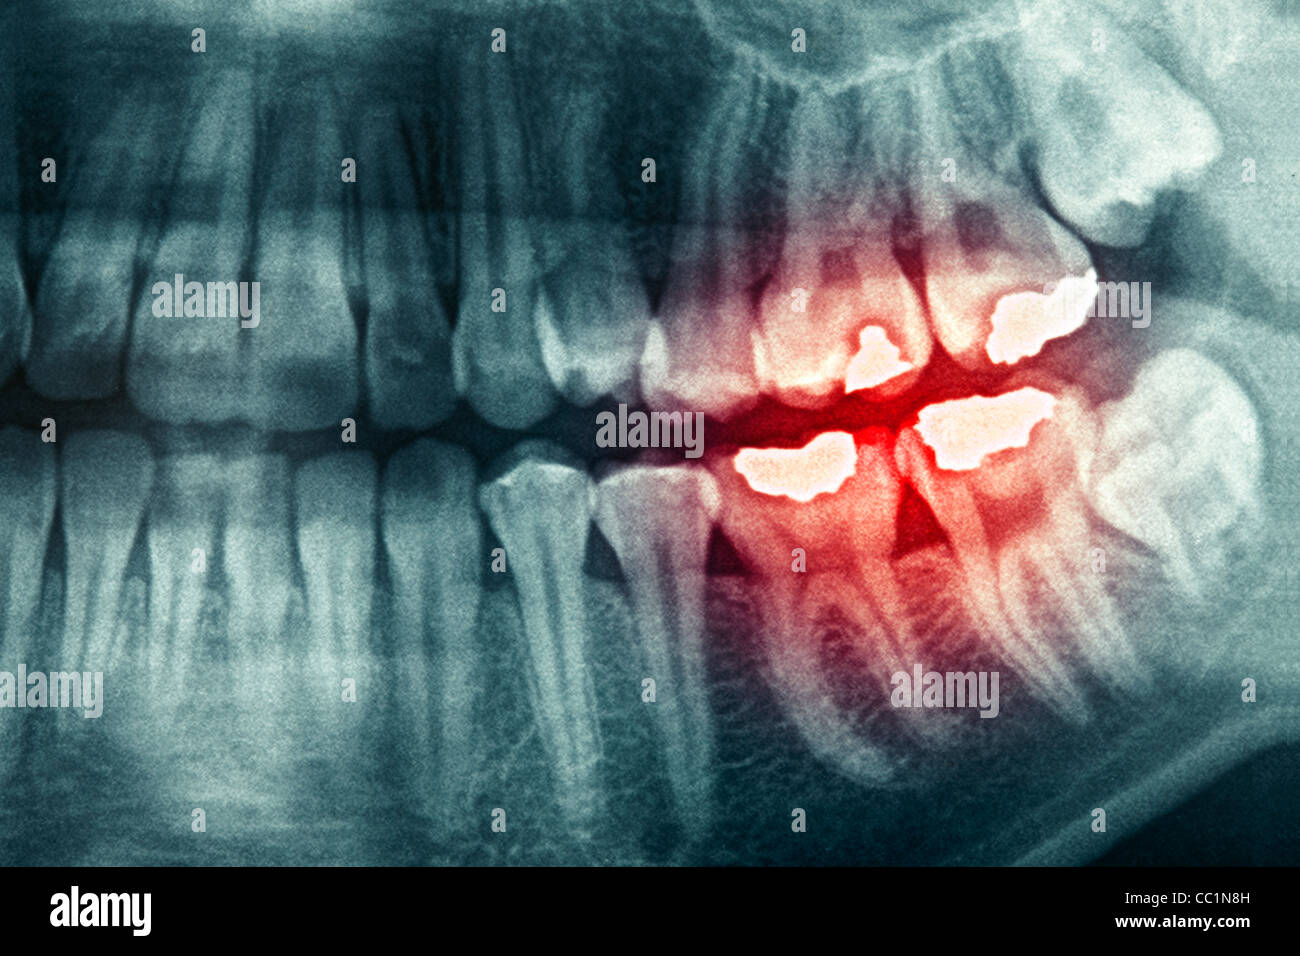 Dental xray with red painful area - Stock Image